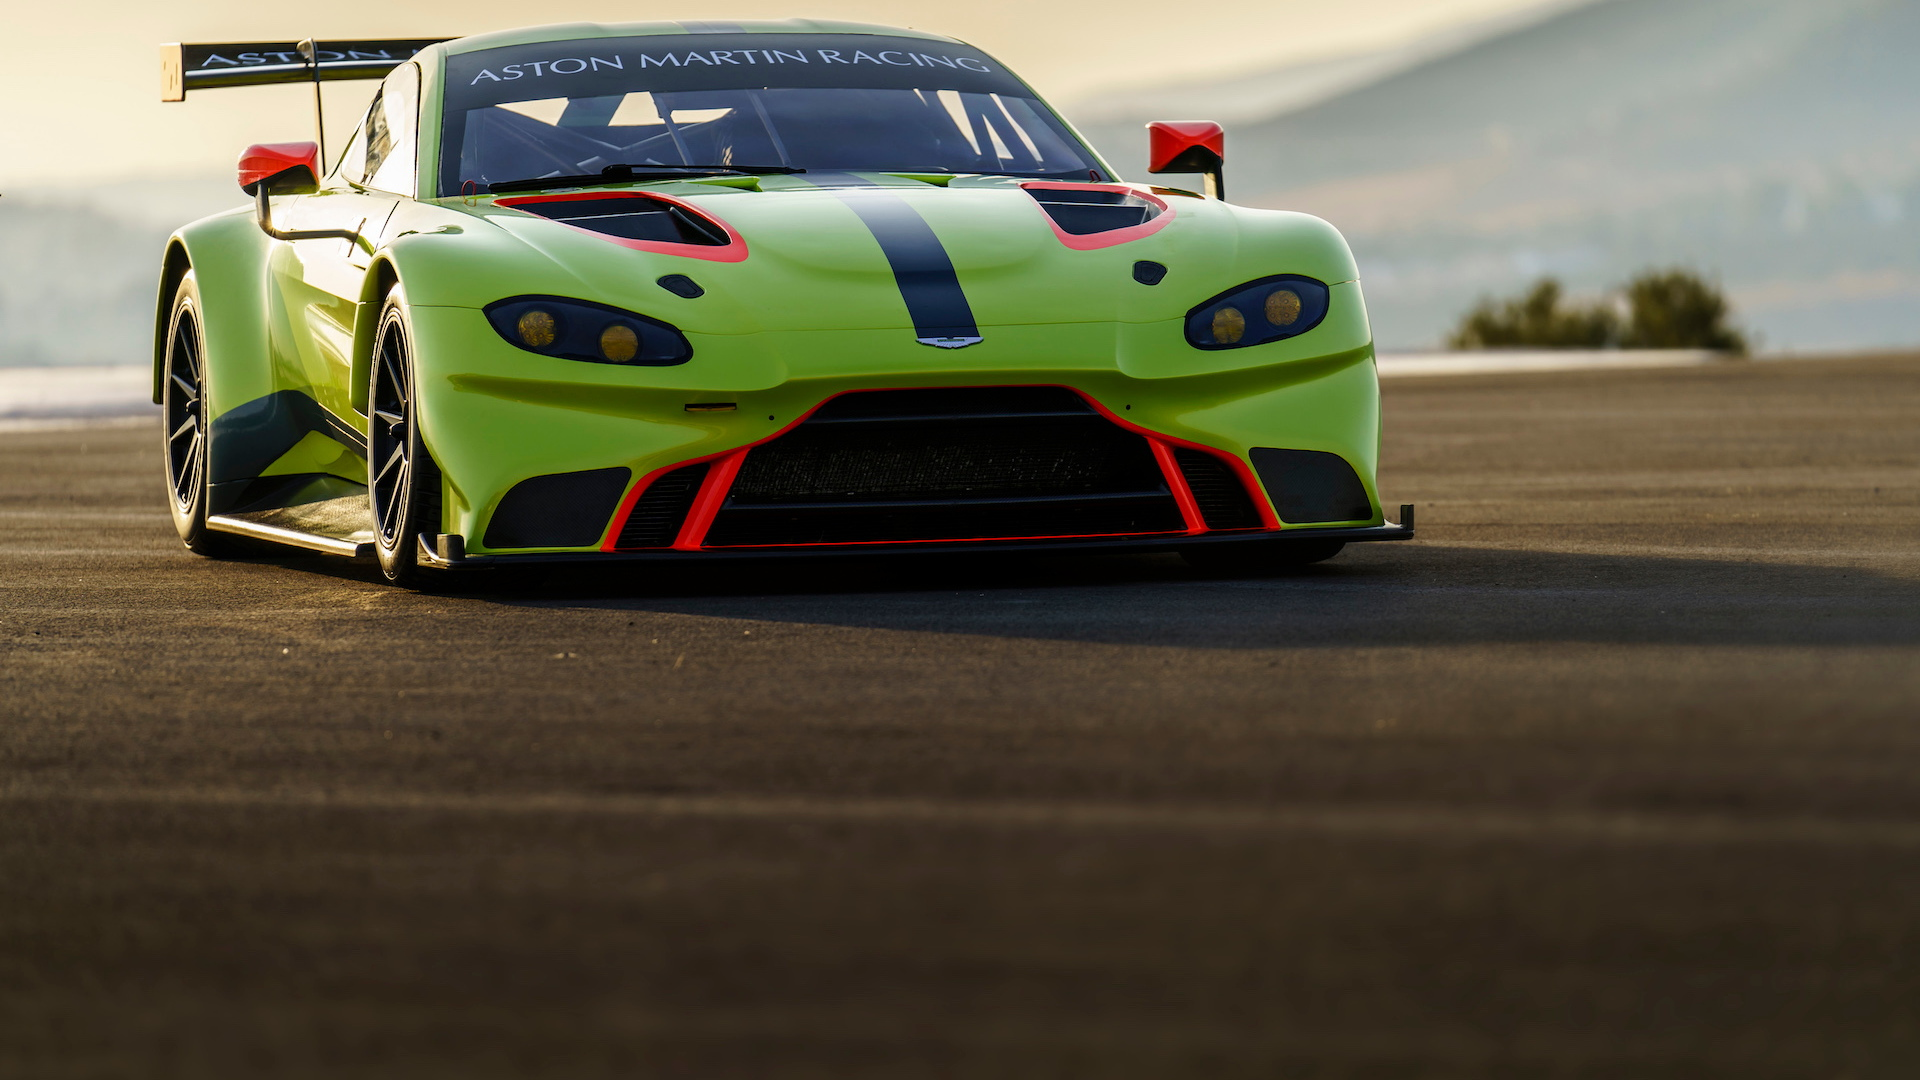 Aston Martin Vantage GTE race car